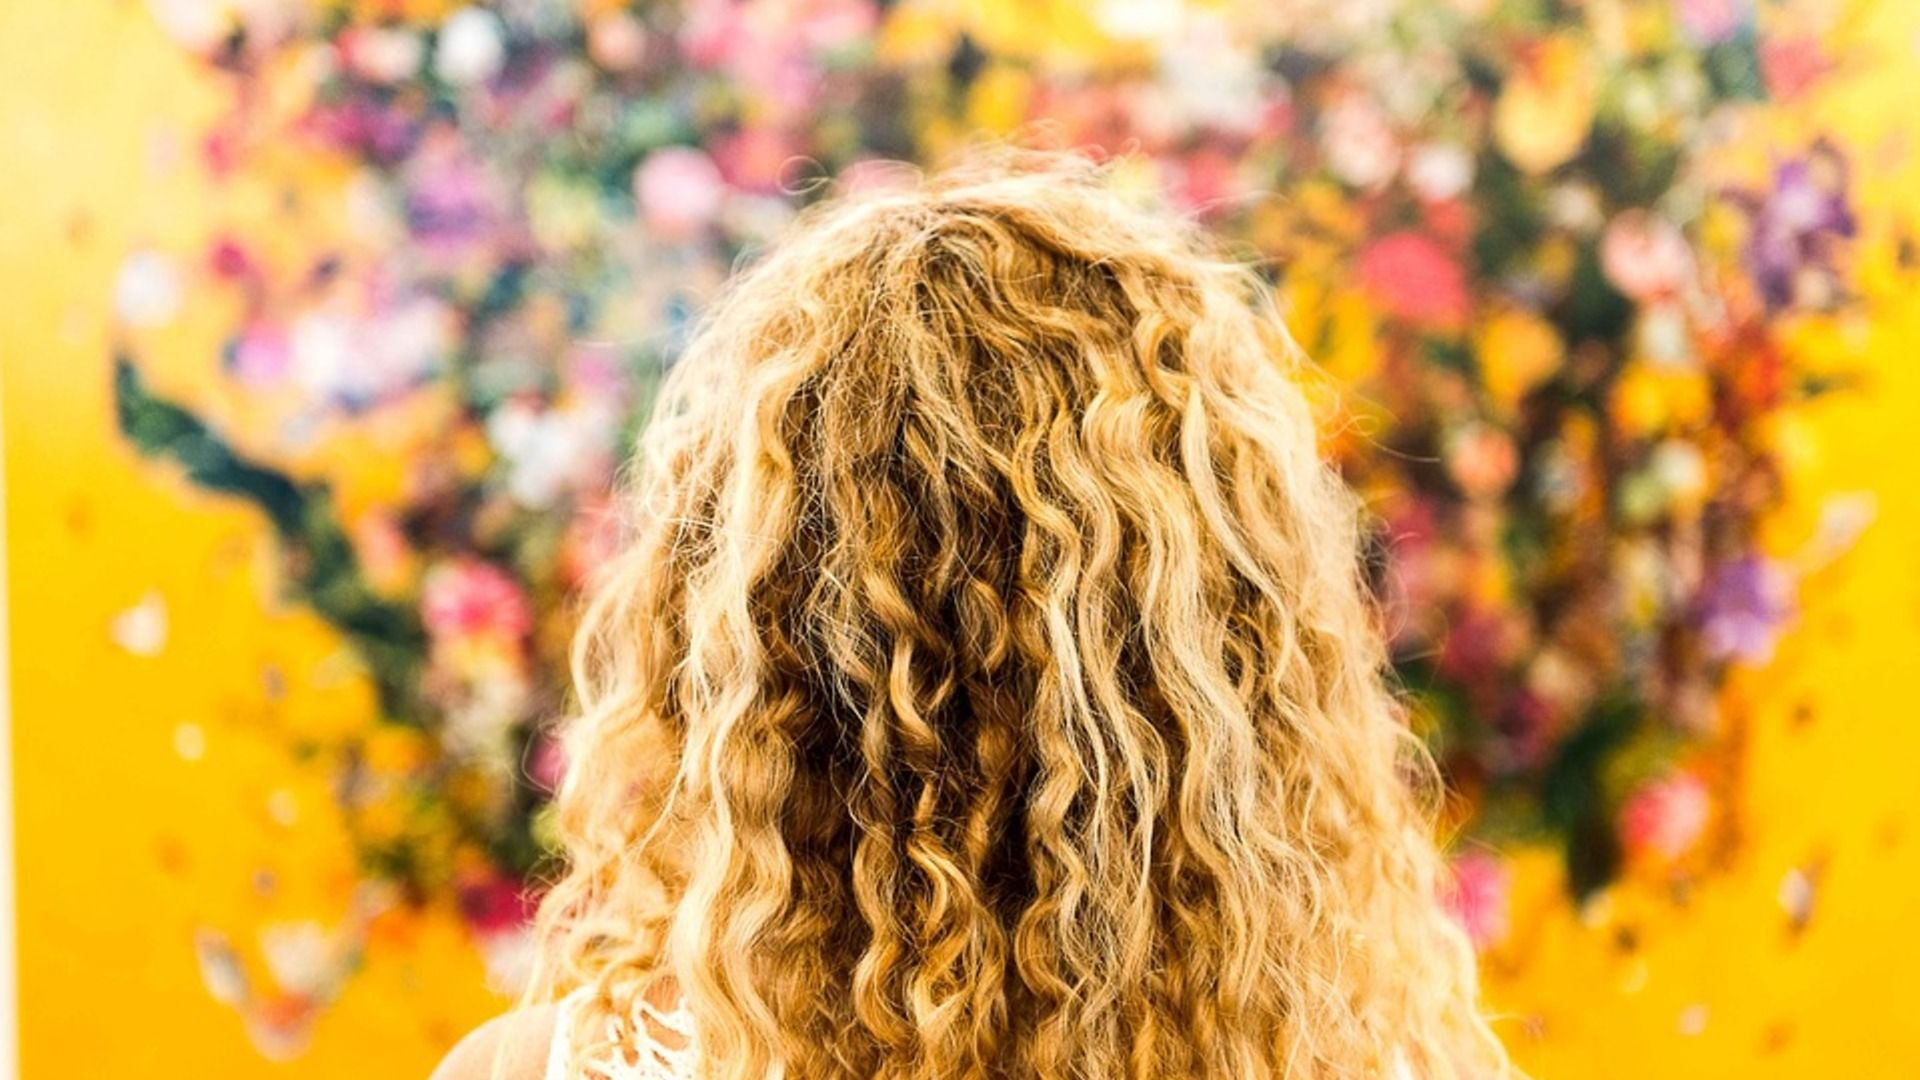 How To Keep Your Curly Hair From Looking Like A Mess While Traveling